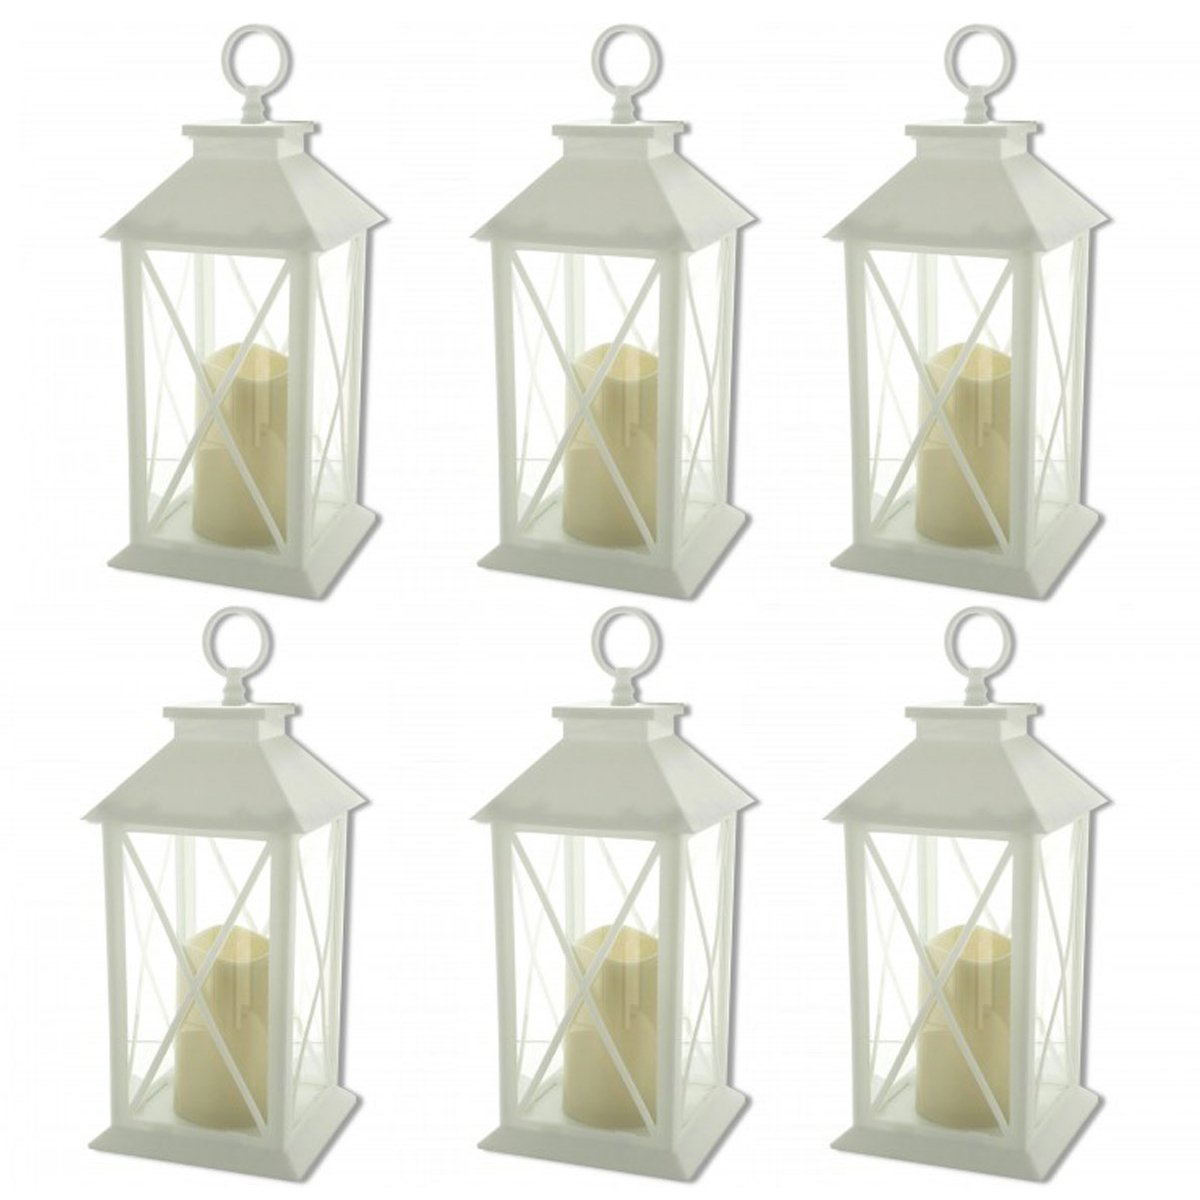 Tectron Int 6-Decorative White Lanterns Cross-X-Design with LED-Flameless Flickering-Candle